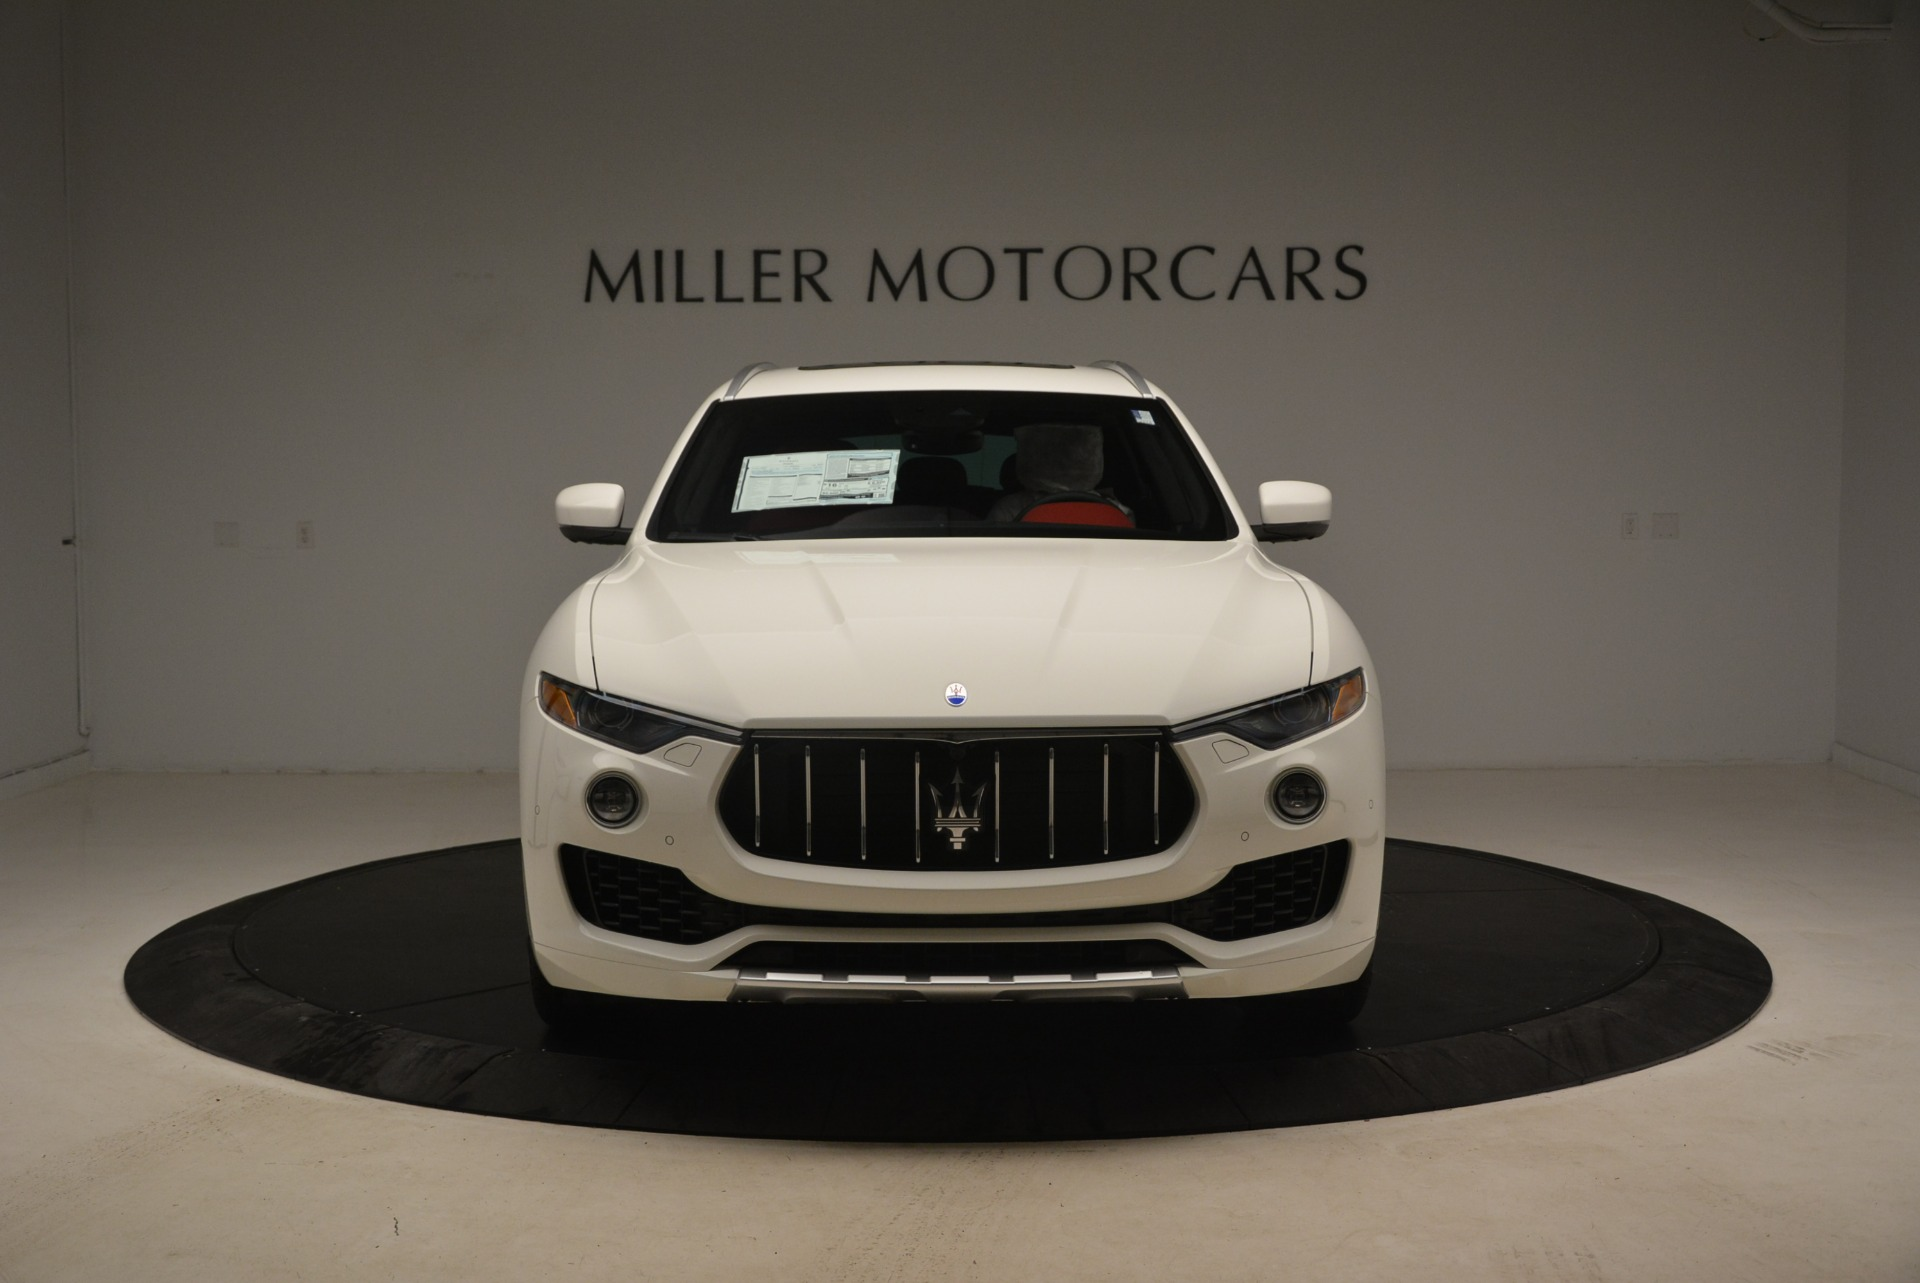 New 2019 Maserati Levante S Q4 GranLusso For Sale In Westport, CT 3003_p12